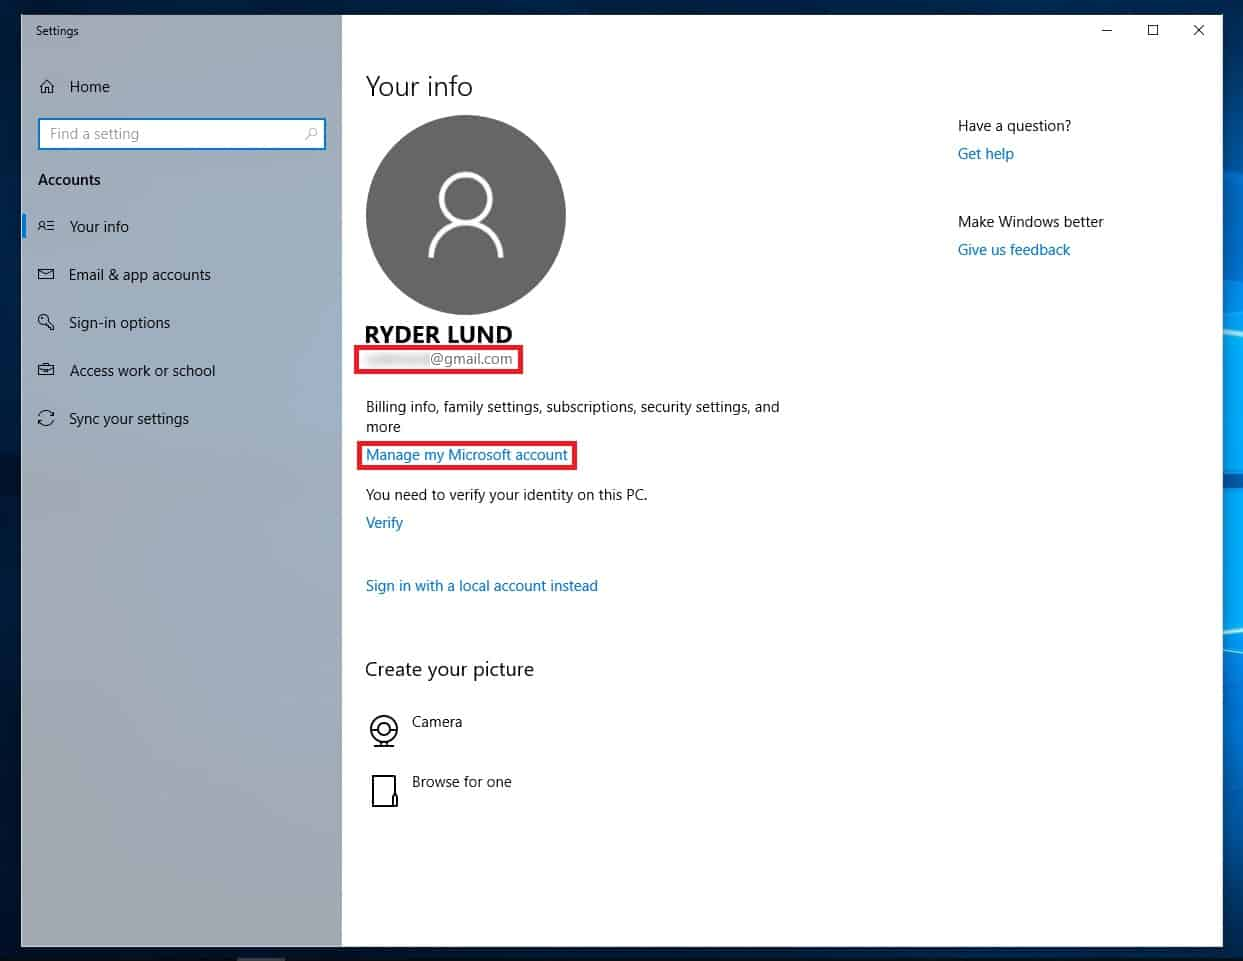 How to change your username on Windows 10 - Win10 FAQ